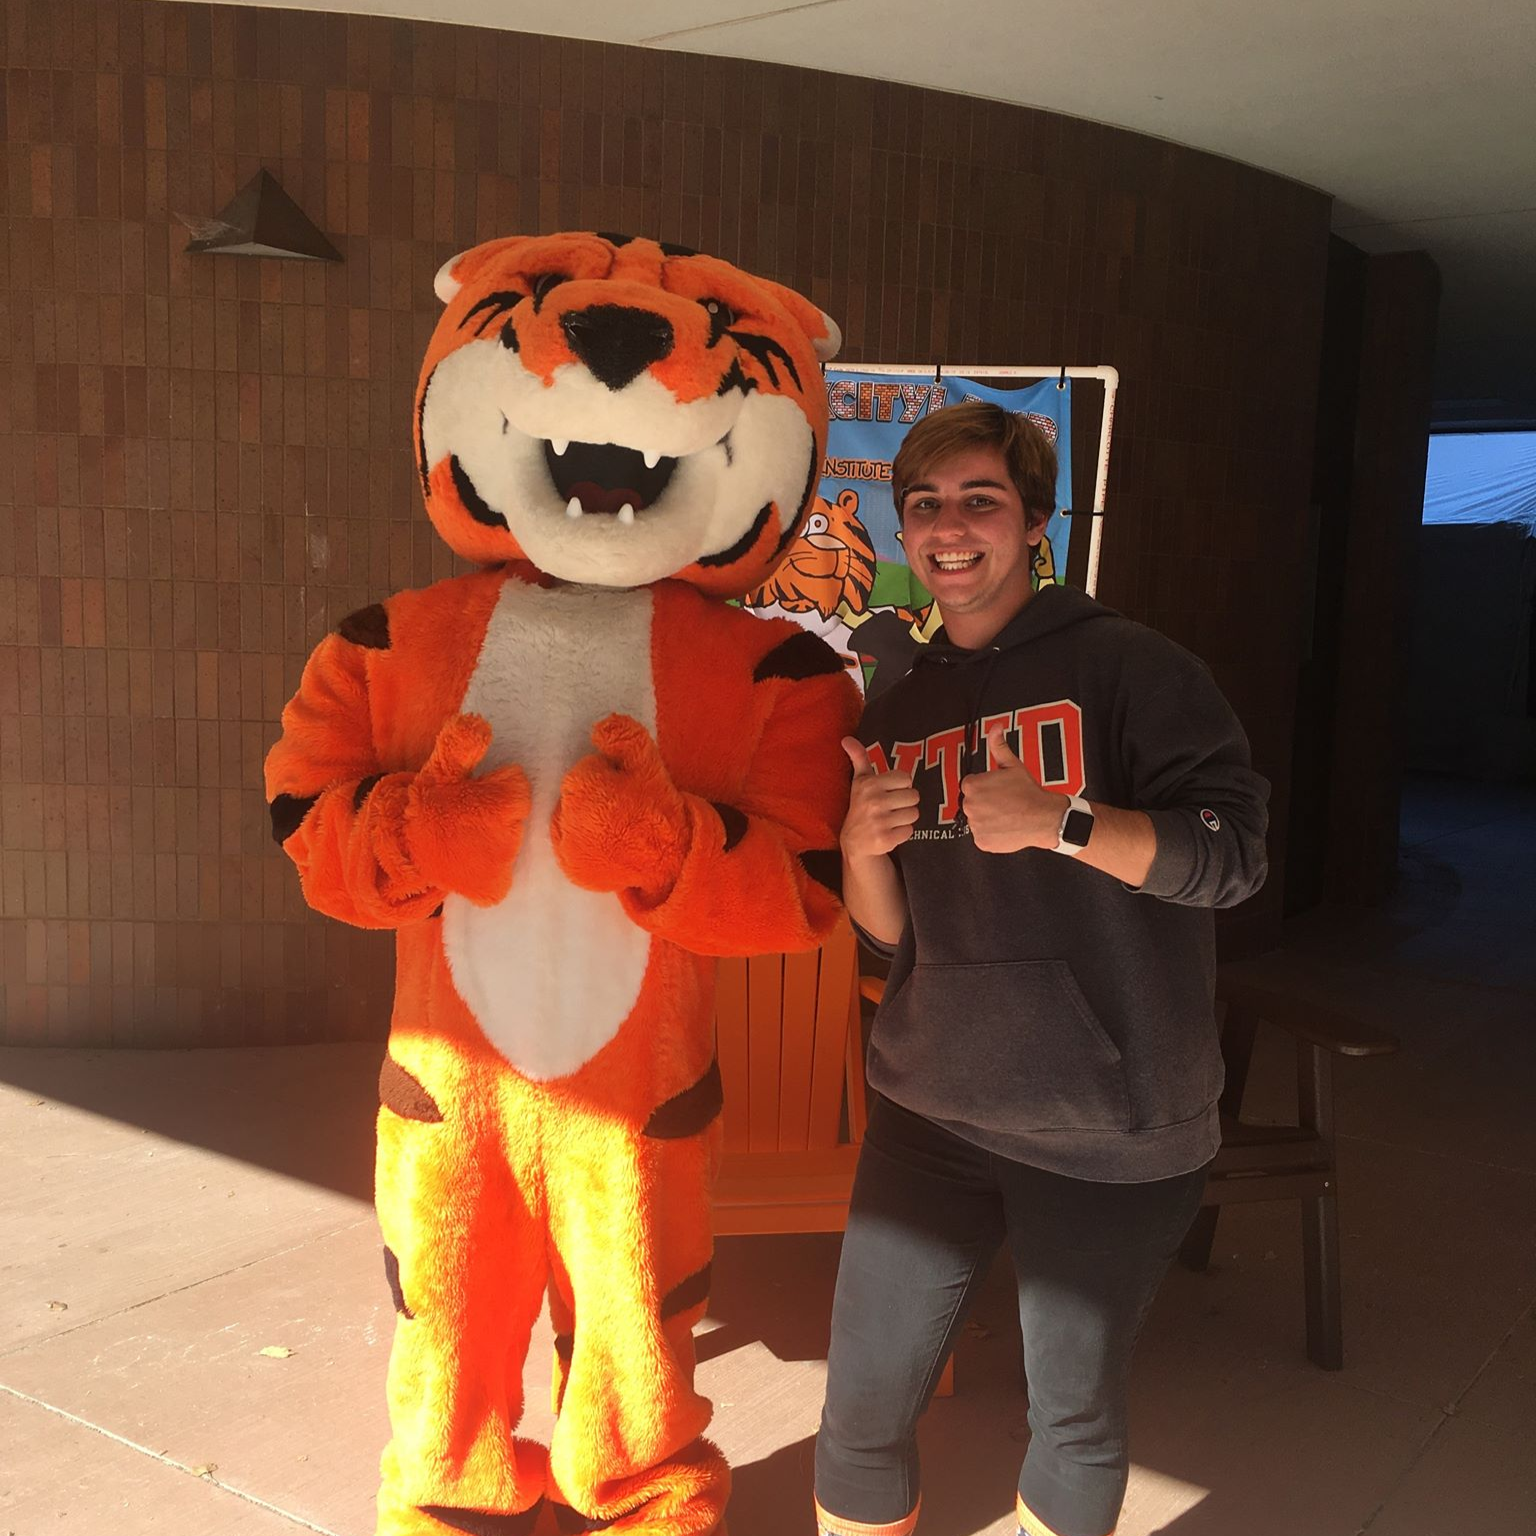 Ryan standing next to the Ritchie mascot in front of the liberal arts hall, both givng the camera two thumbs up.